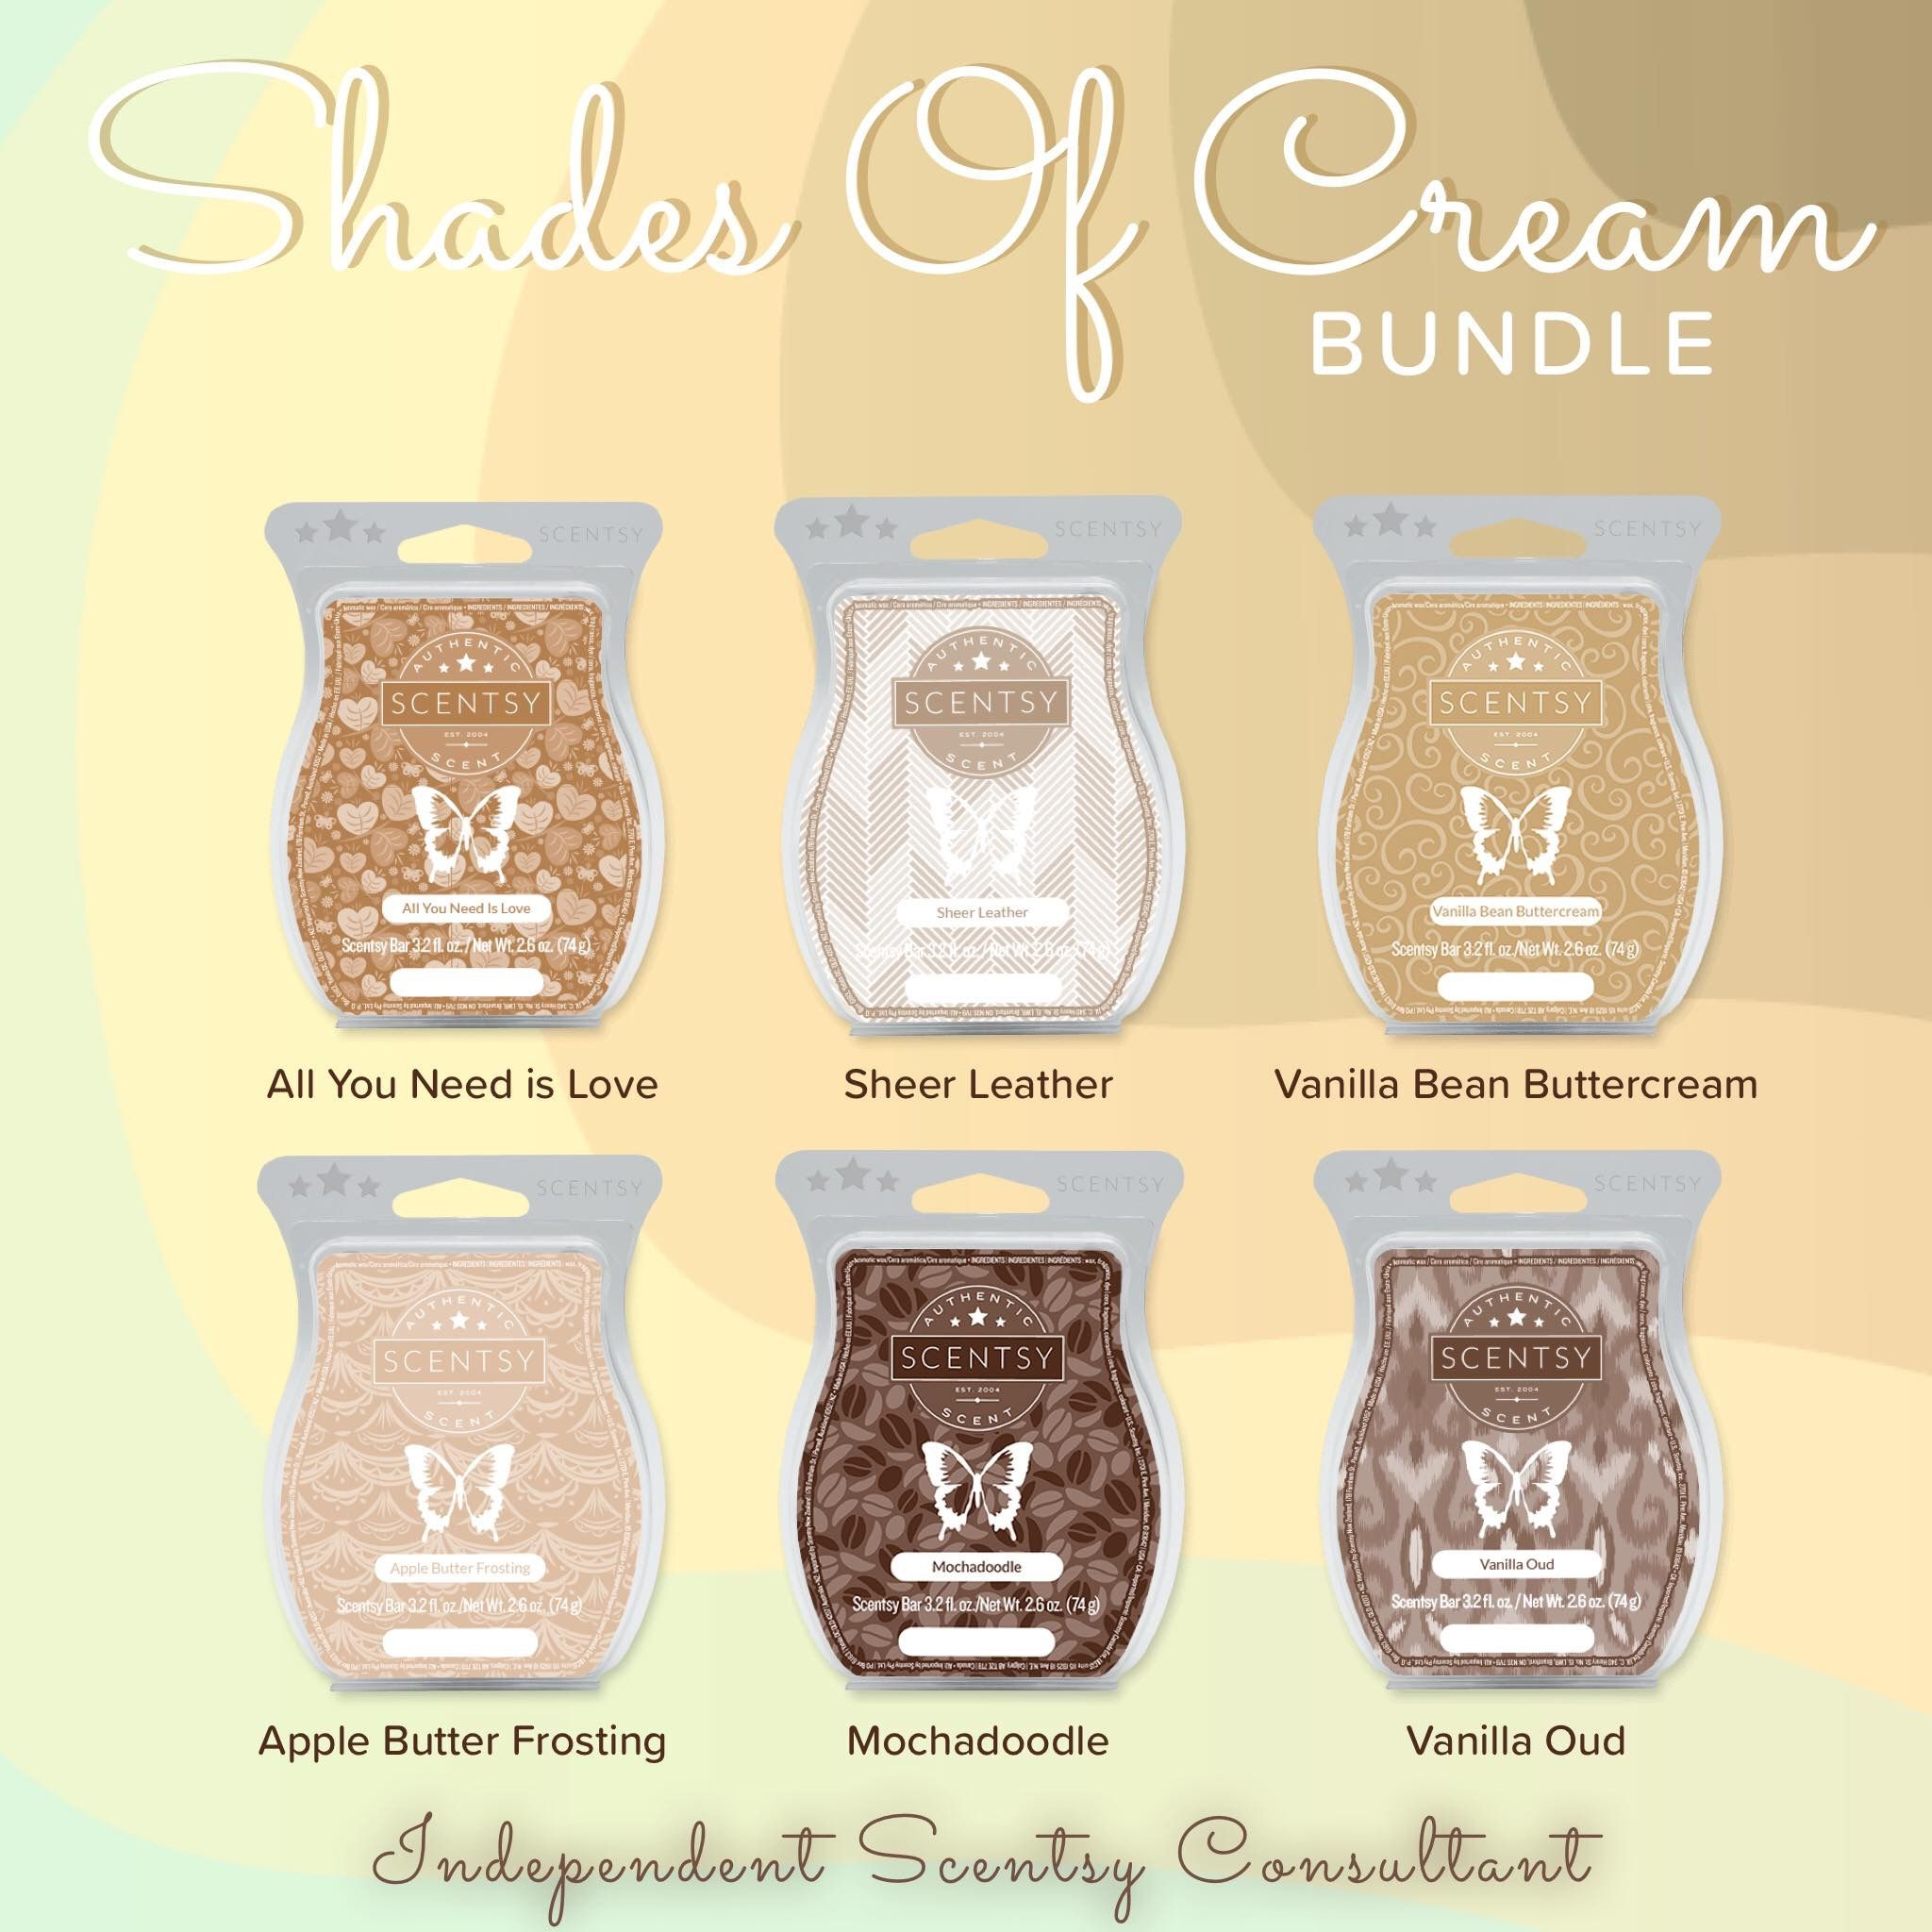 Shades Of Cream Bundle 6 Bars In Various Brown And 5 Get Your 6th For Free 30